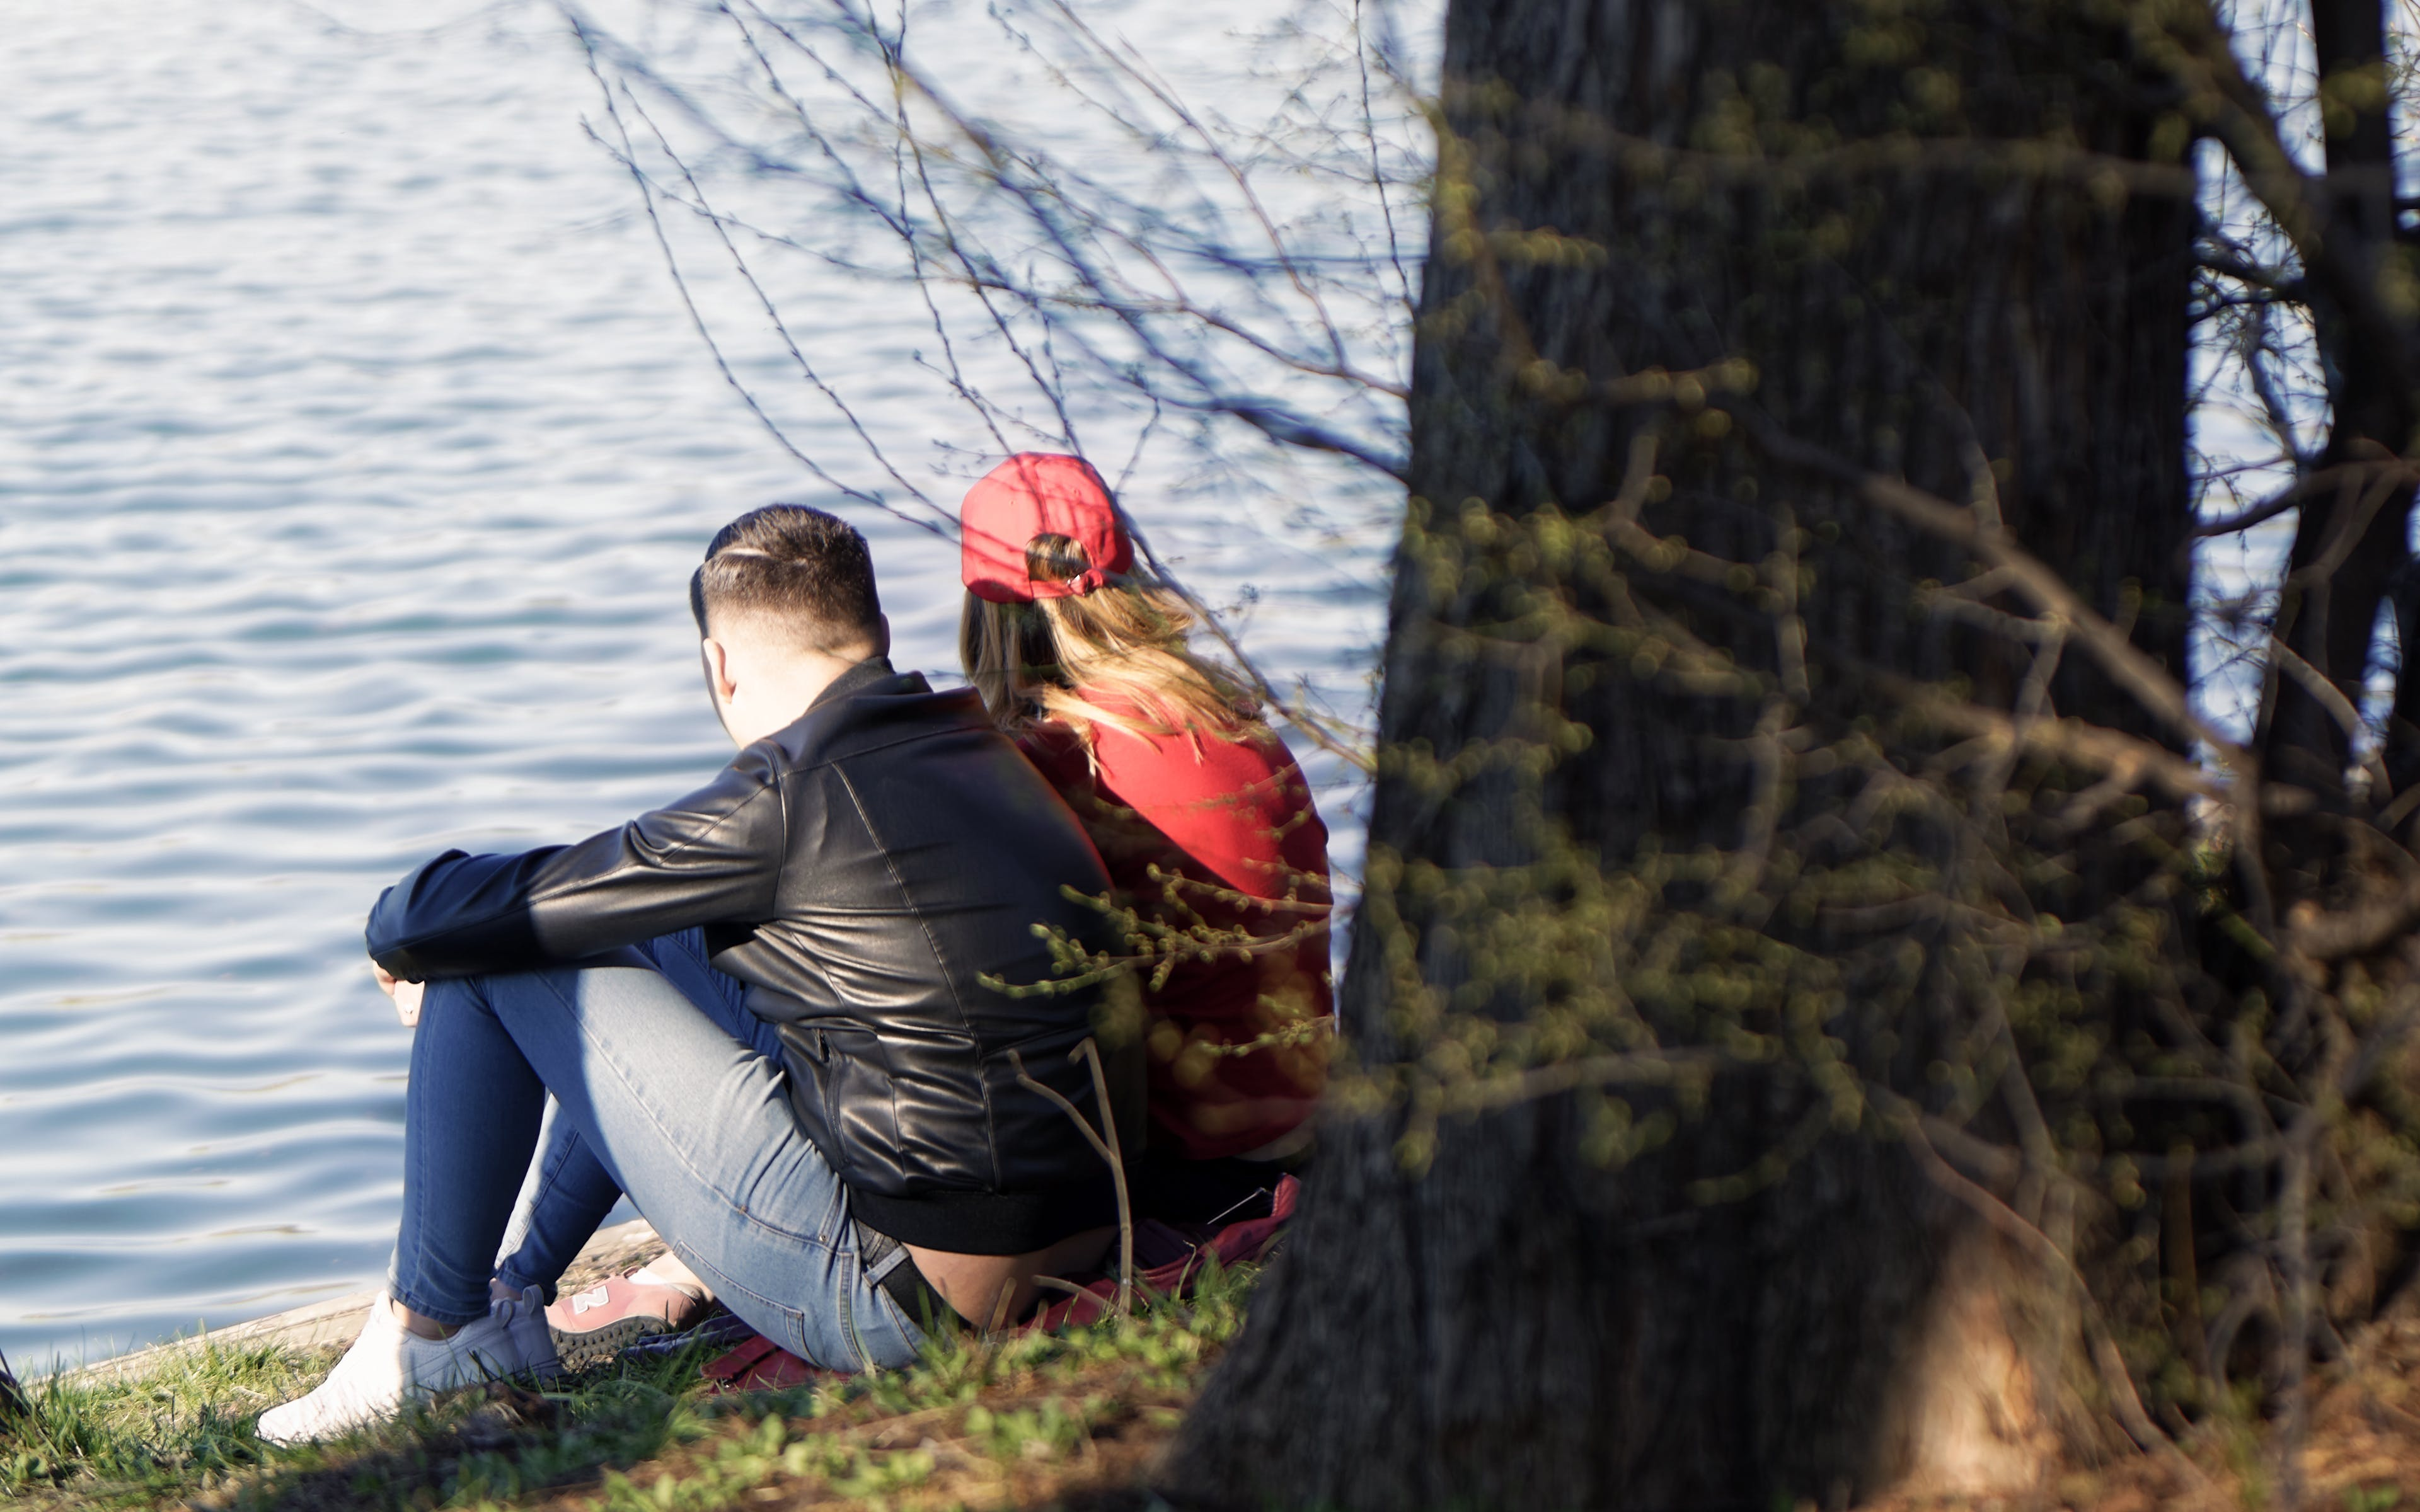 Free stock photo of nature, tree trunk, water, young couple relaxing near a body of water